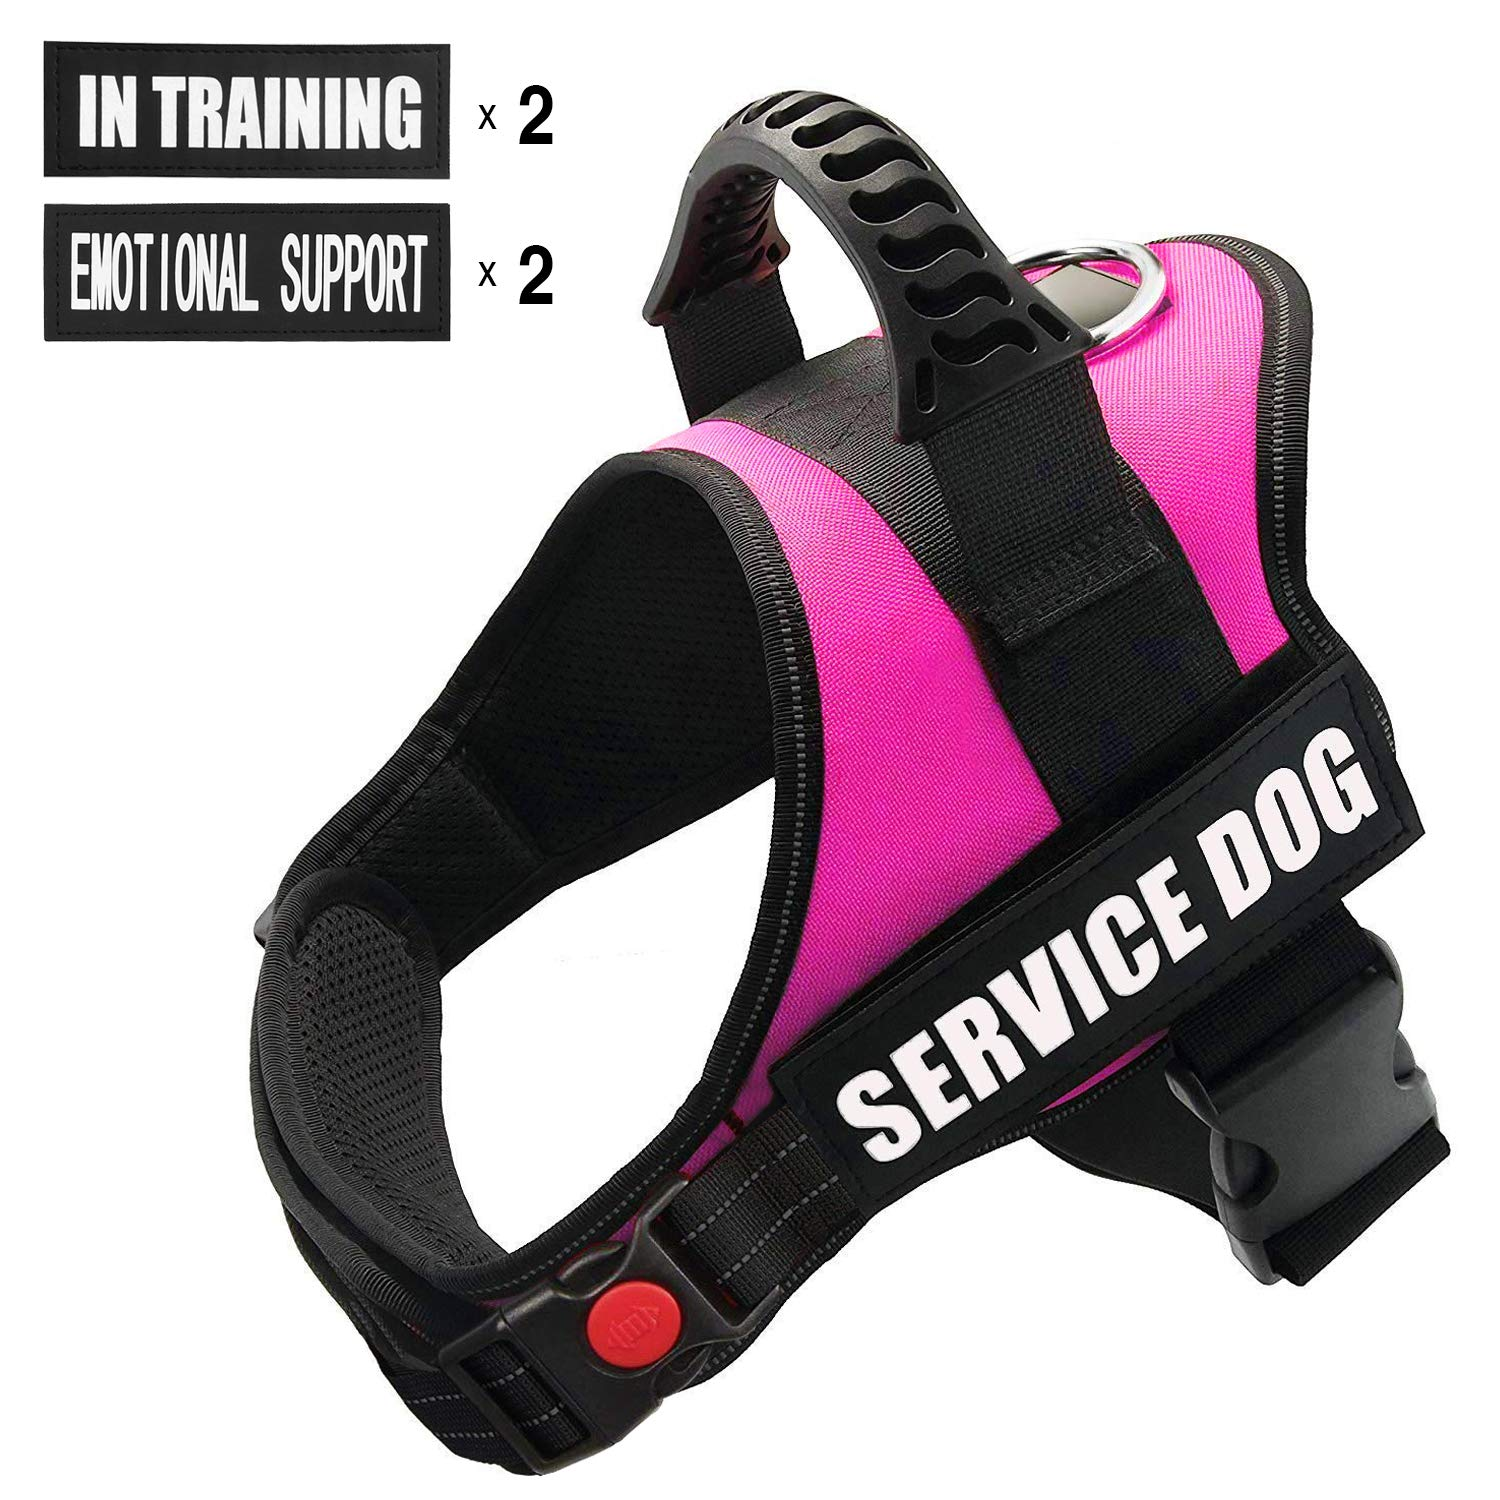 FAYOGOO Dog Vest Harness for Service Dogs, Comfortable Padded Dog Training Vest with Reflective Patches and Handle for Large Medium Small Dogs (Small: Chest 20-25'' Neck 16-20'', Pink)